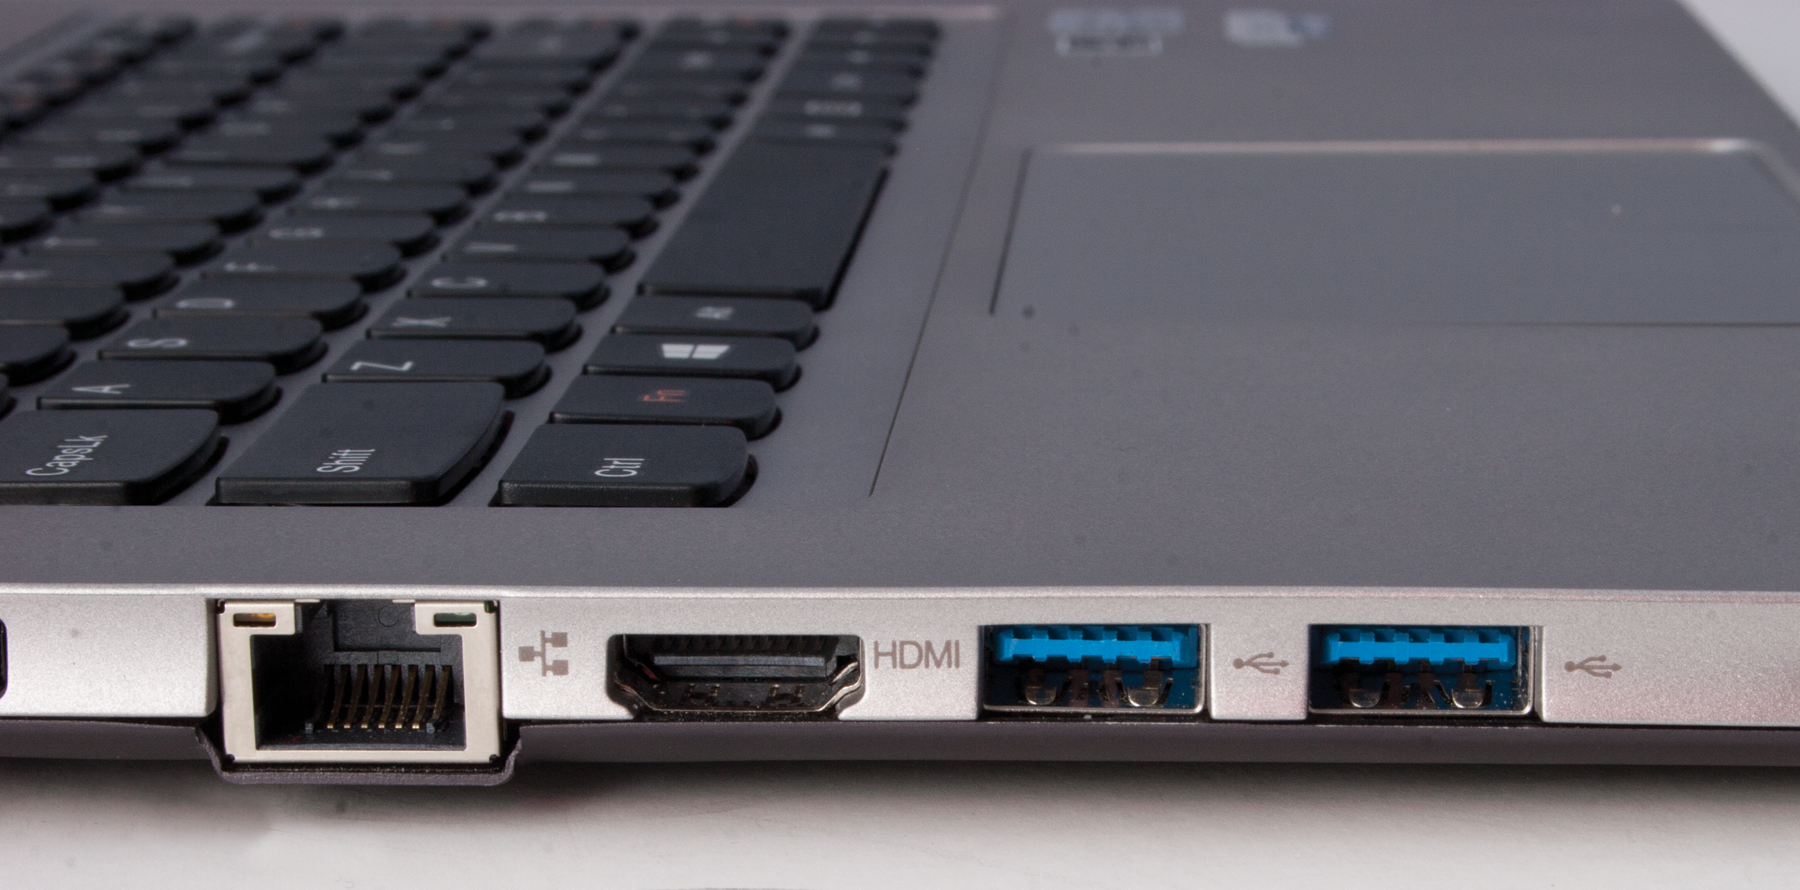 Closeup of the Lenovo U310 touch ports